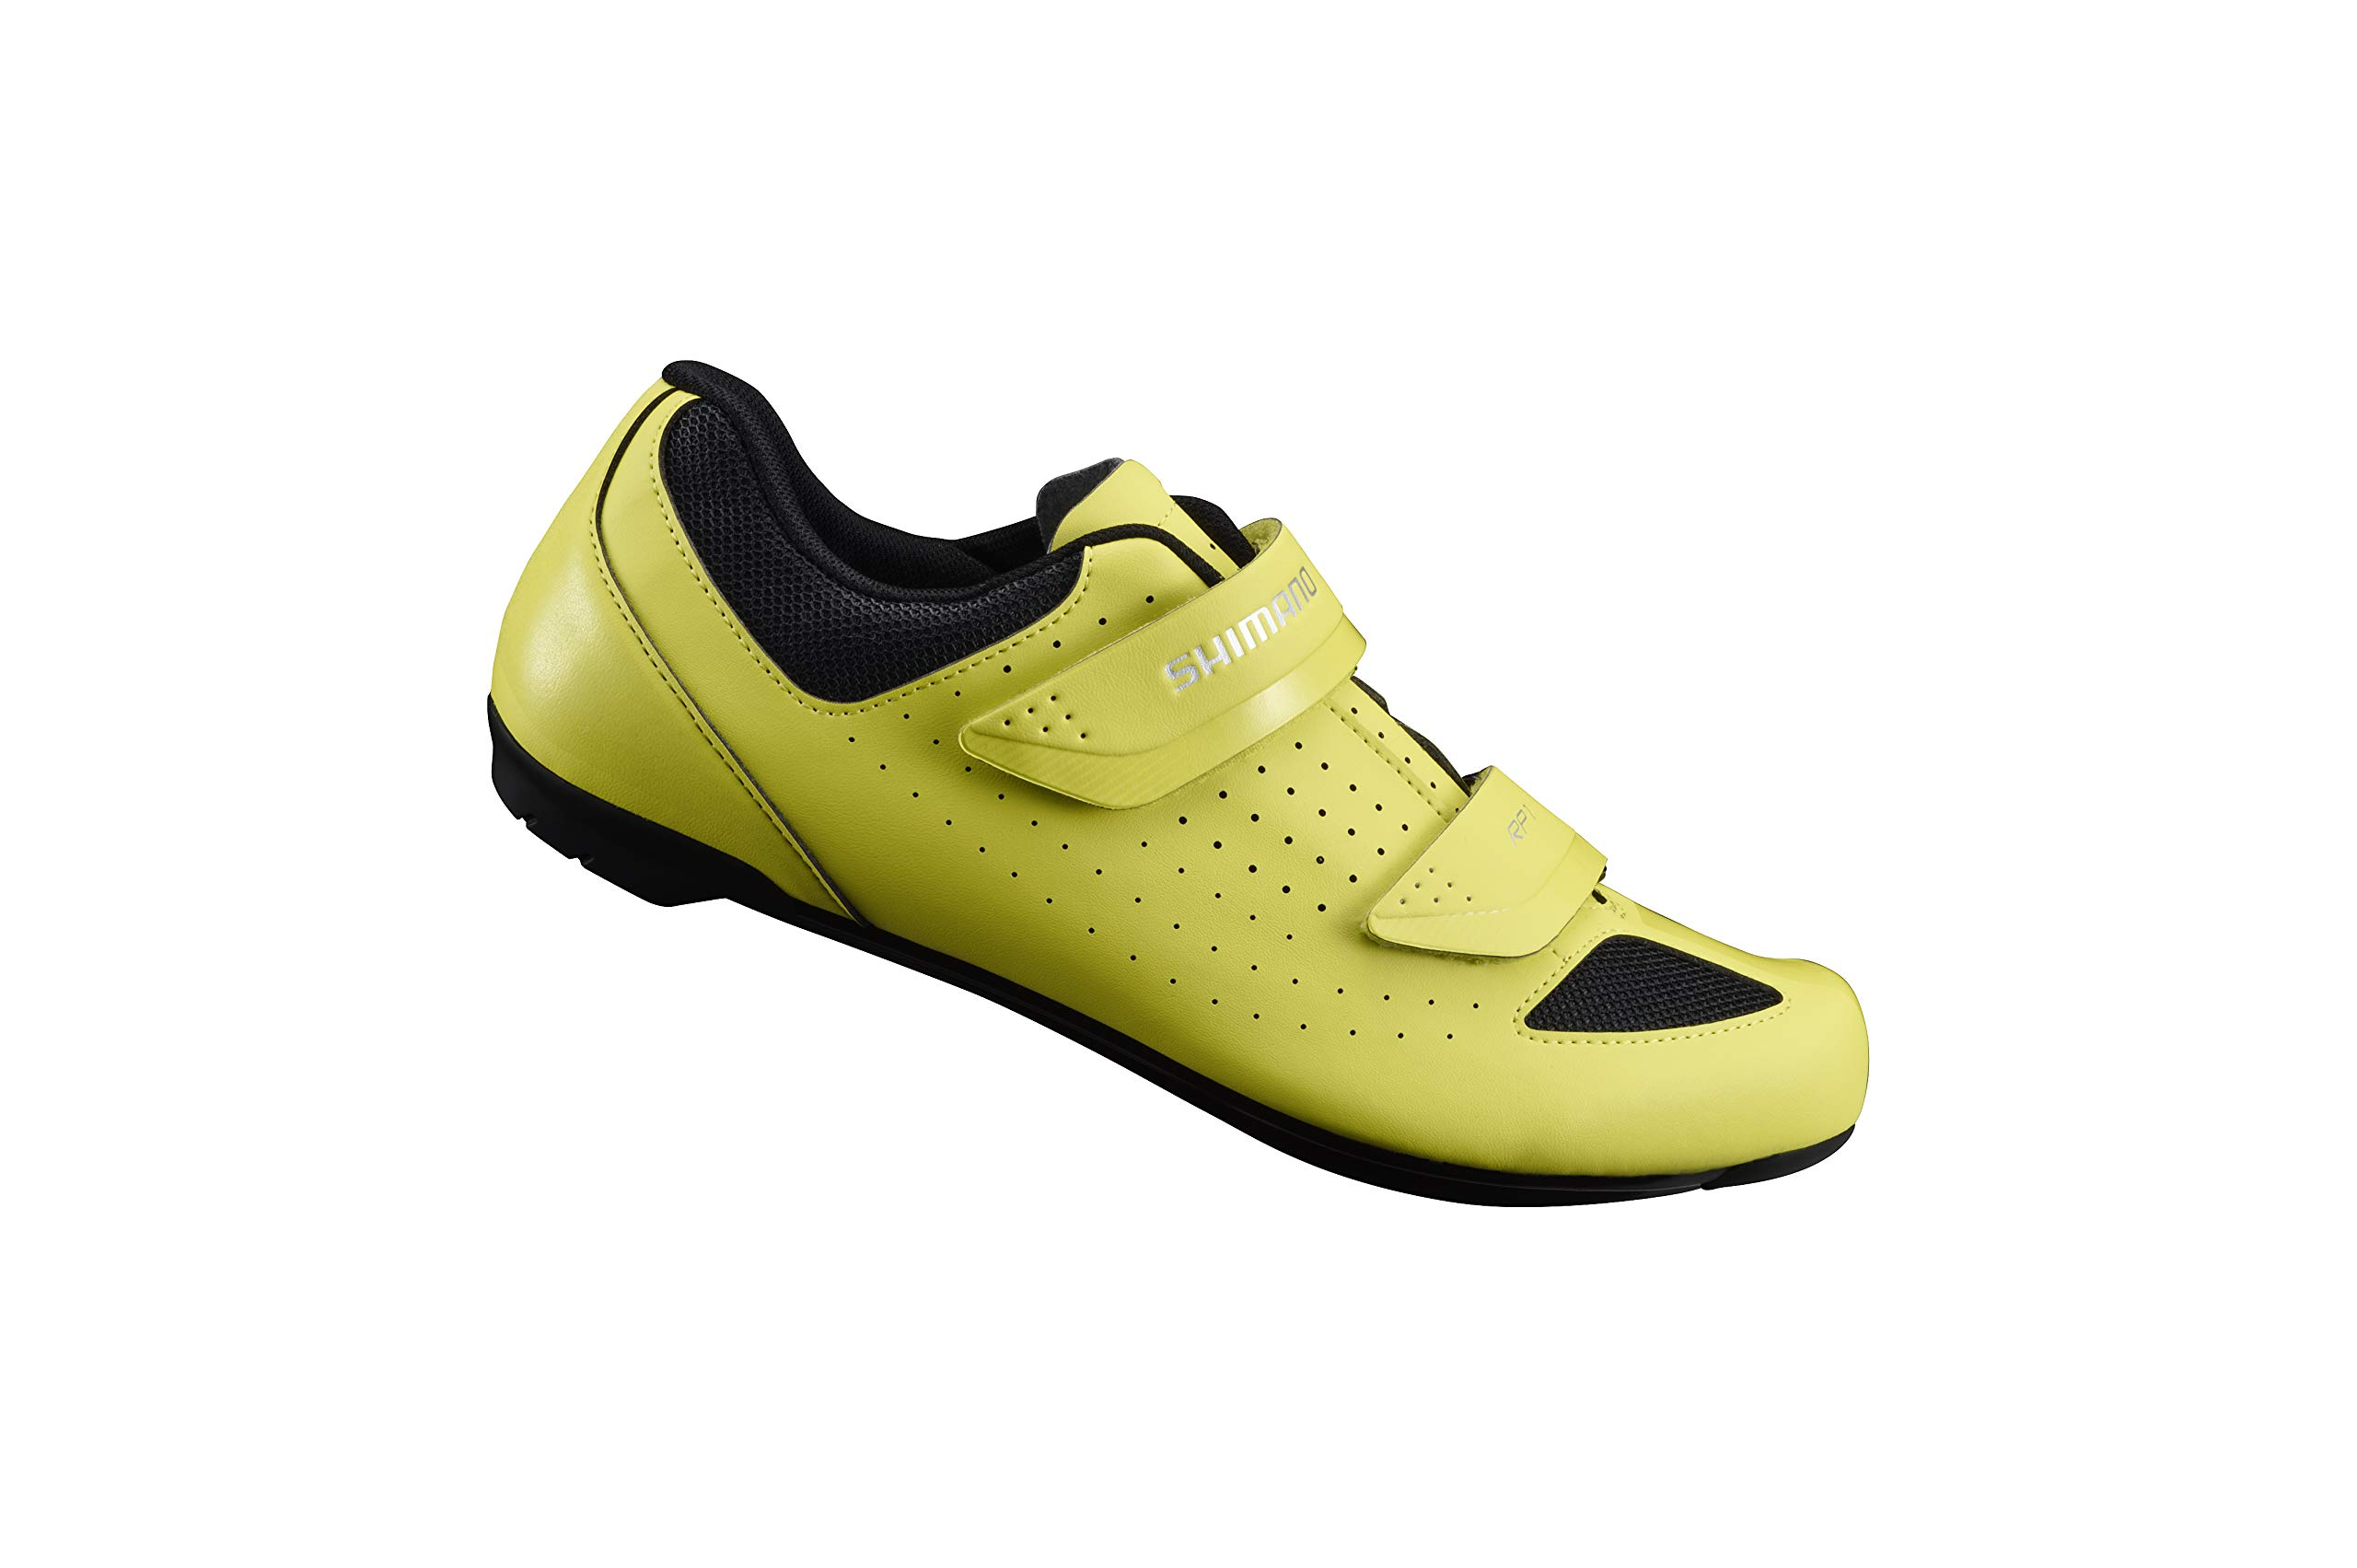 SHIMANO SH-RP1 Bicycle Shoes, Neon Yellow, Size 36